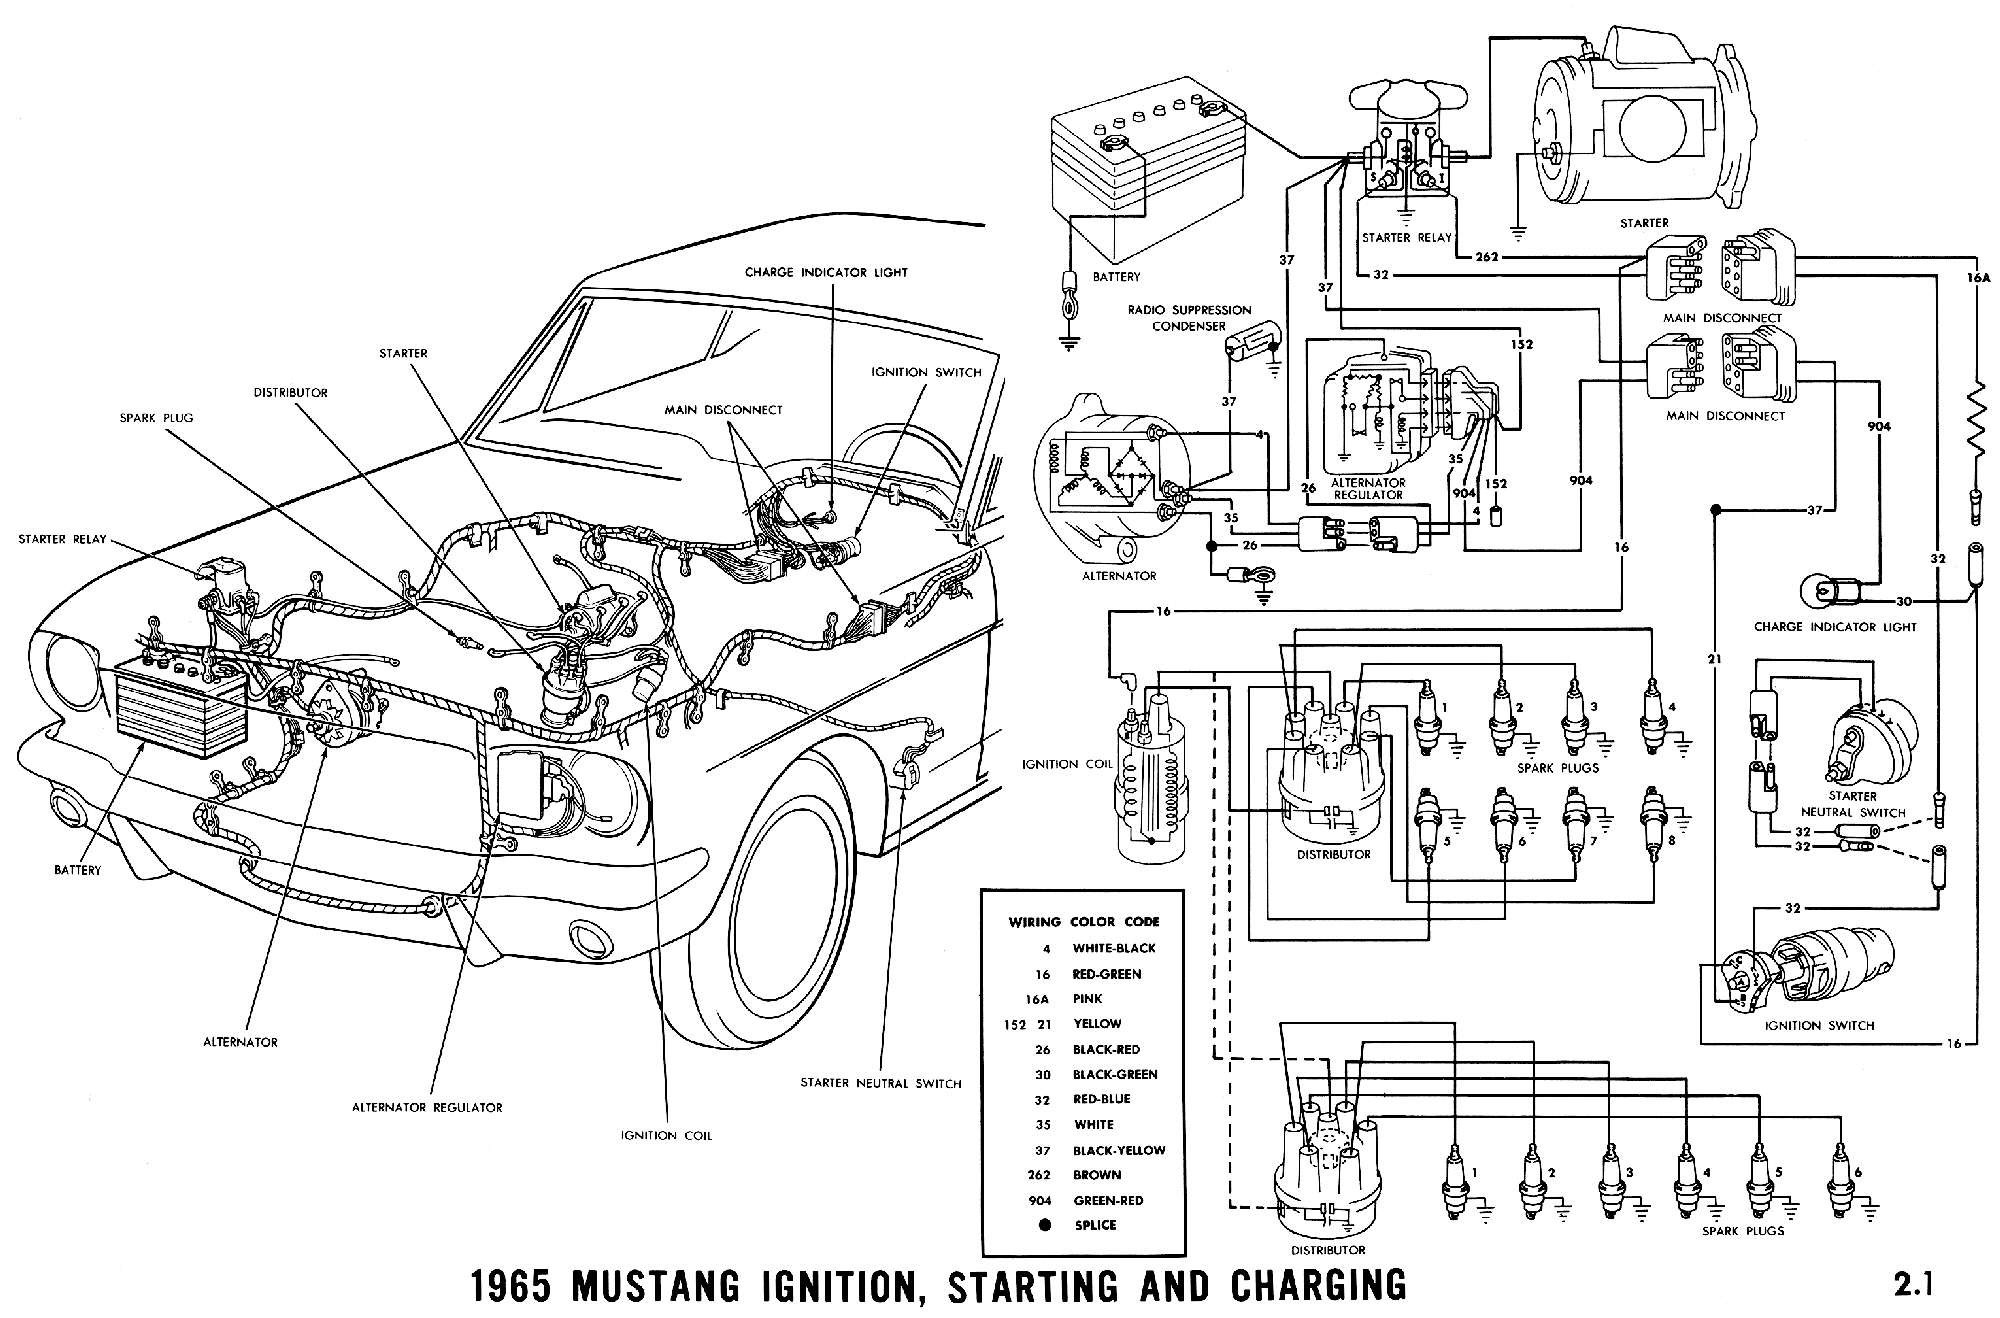 Diagram Of Car Components 2015 Mustang Engine Diagram Engine Car Parts and Ponent Diagram Of Diagram Of Car Components